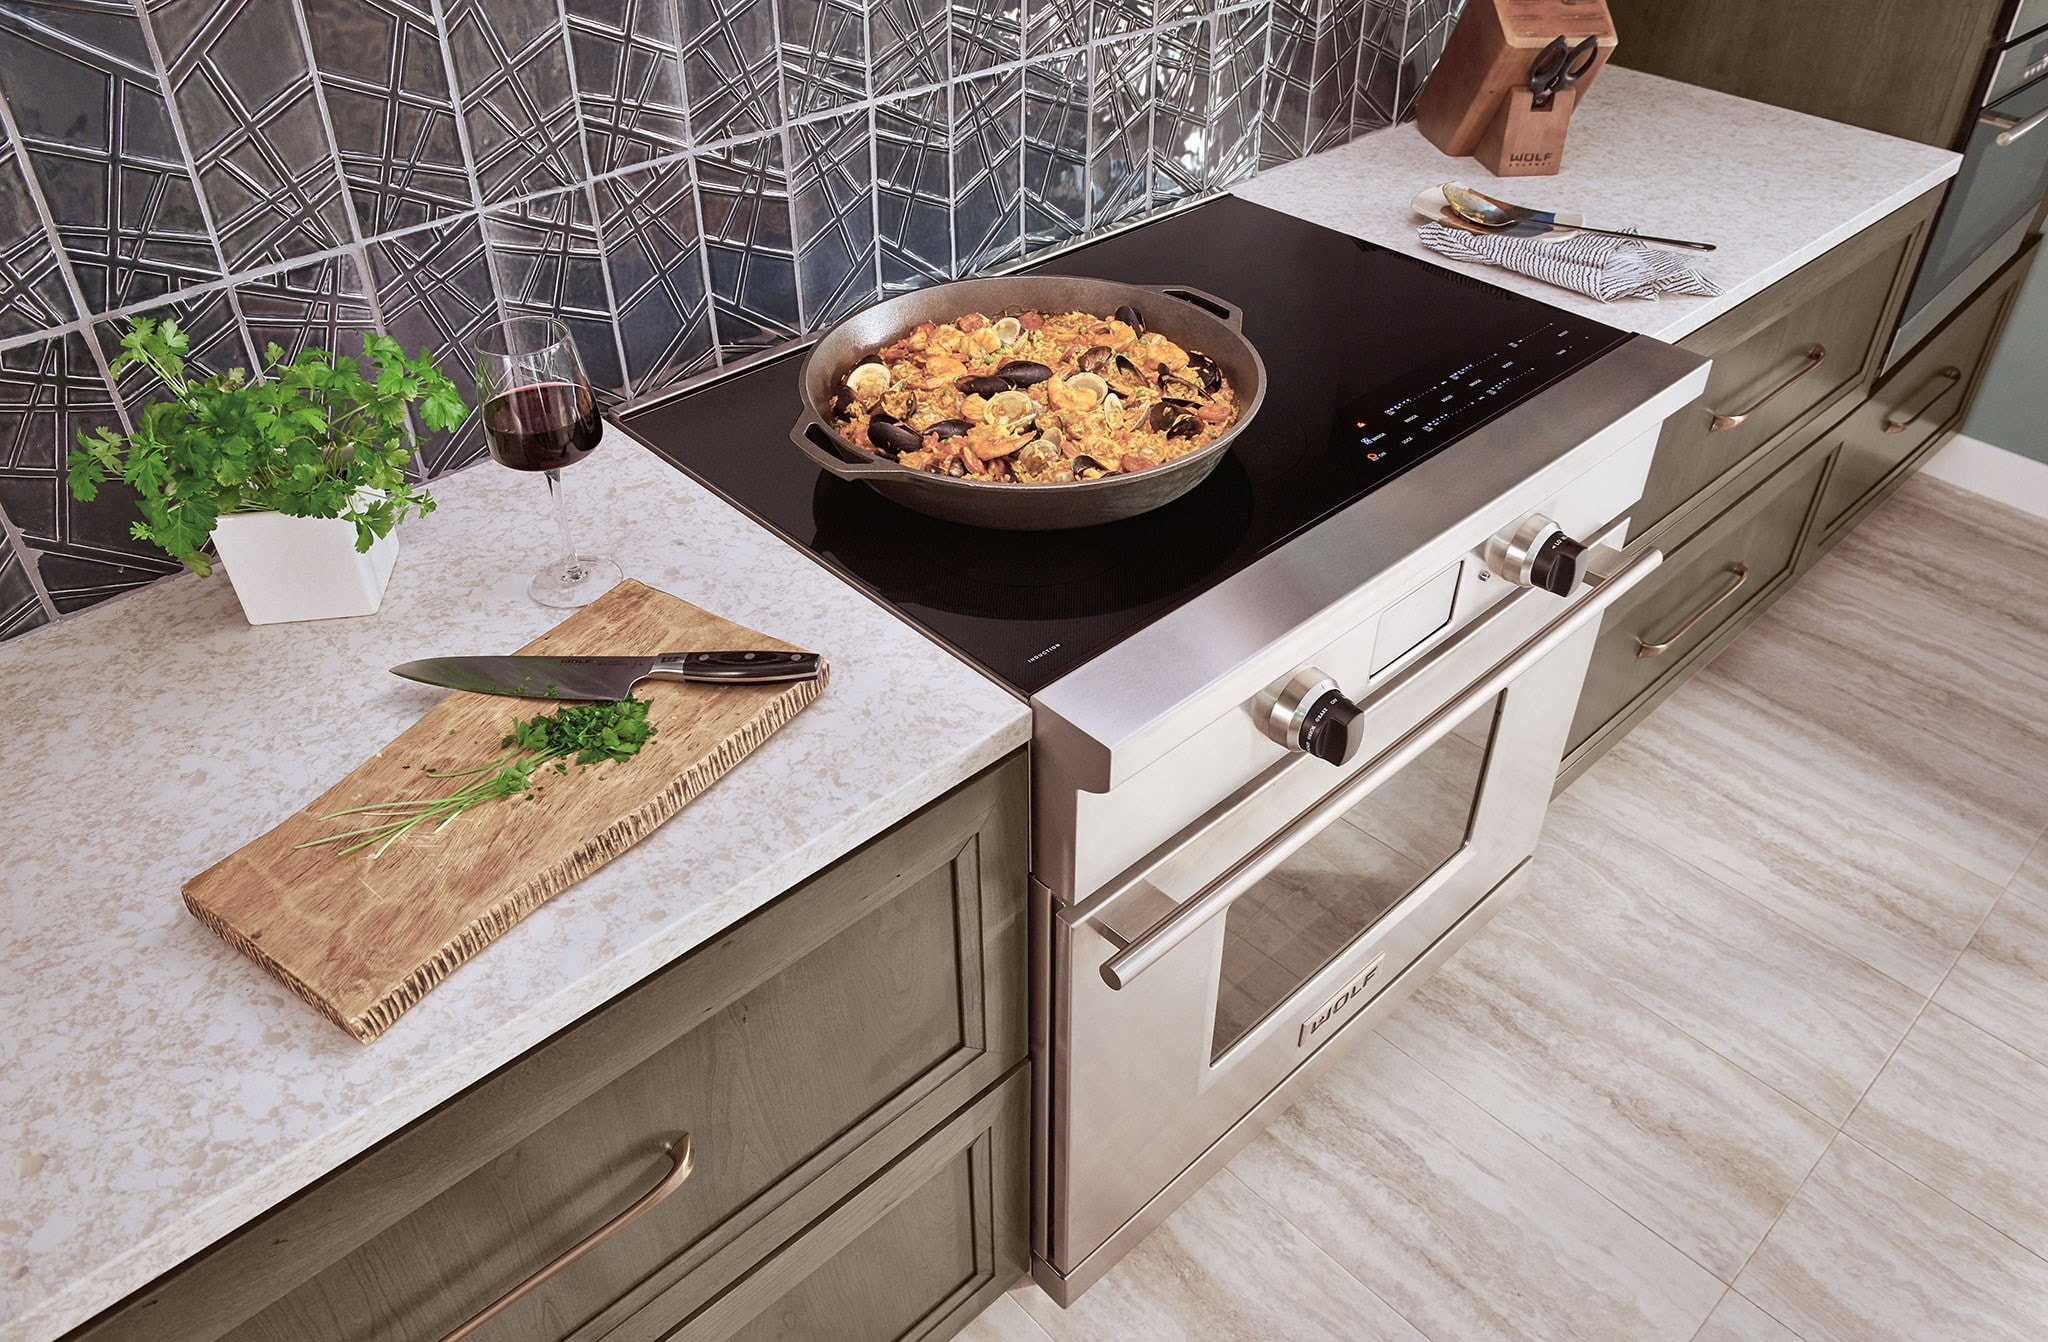 gas kitchen stove. New Induction Ranges Gas Kitchen Stove I